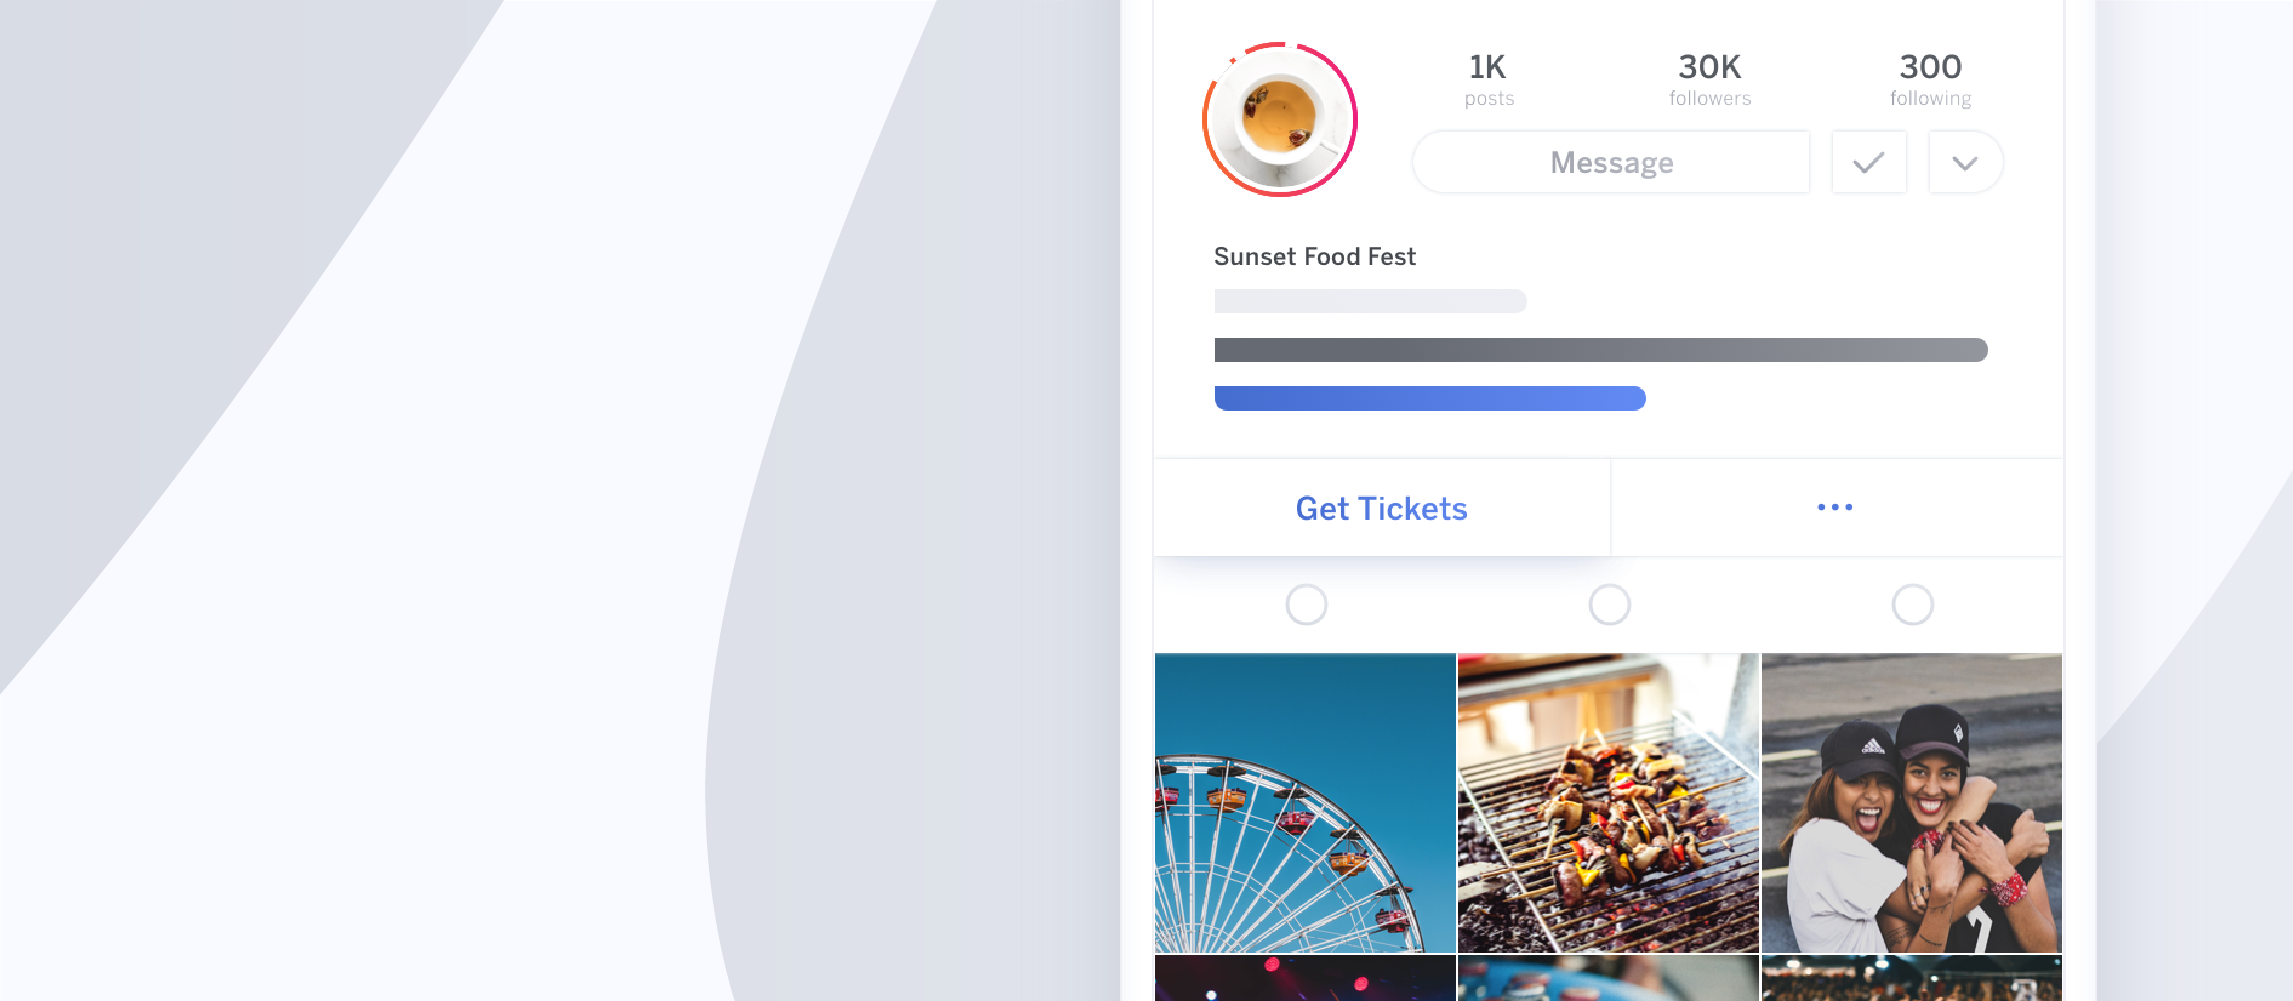 How to Use Instagram To Sell Out Your Event - Eventbrite